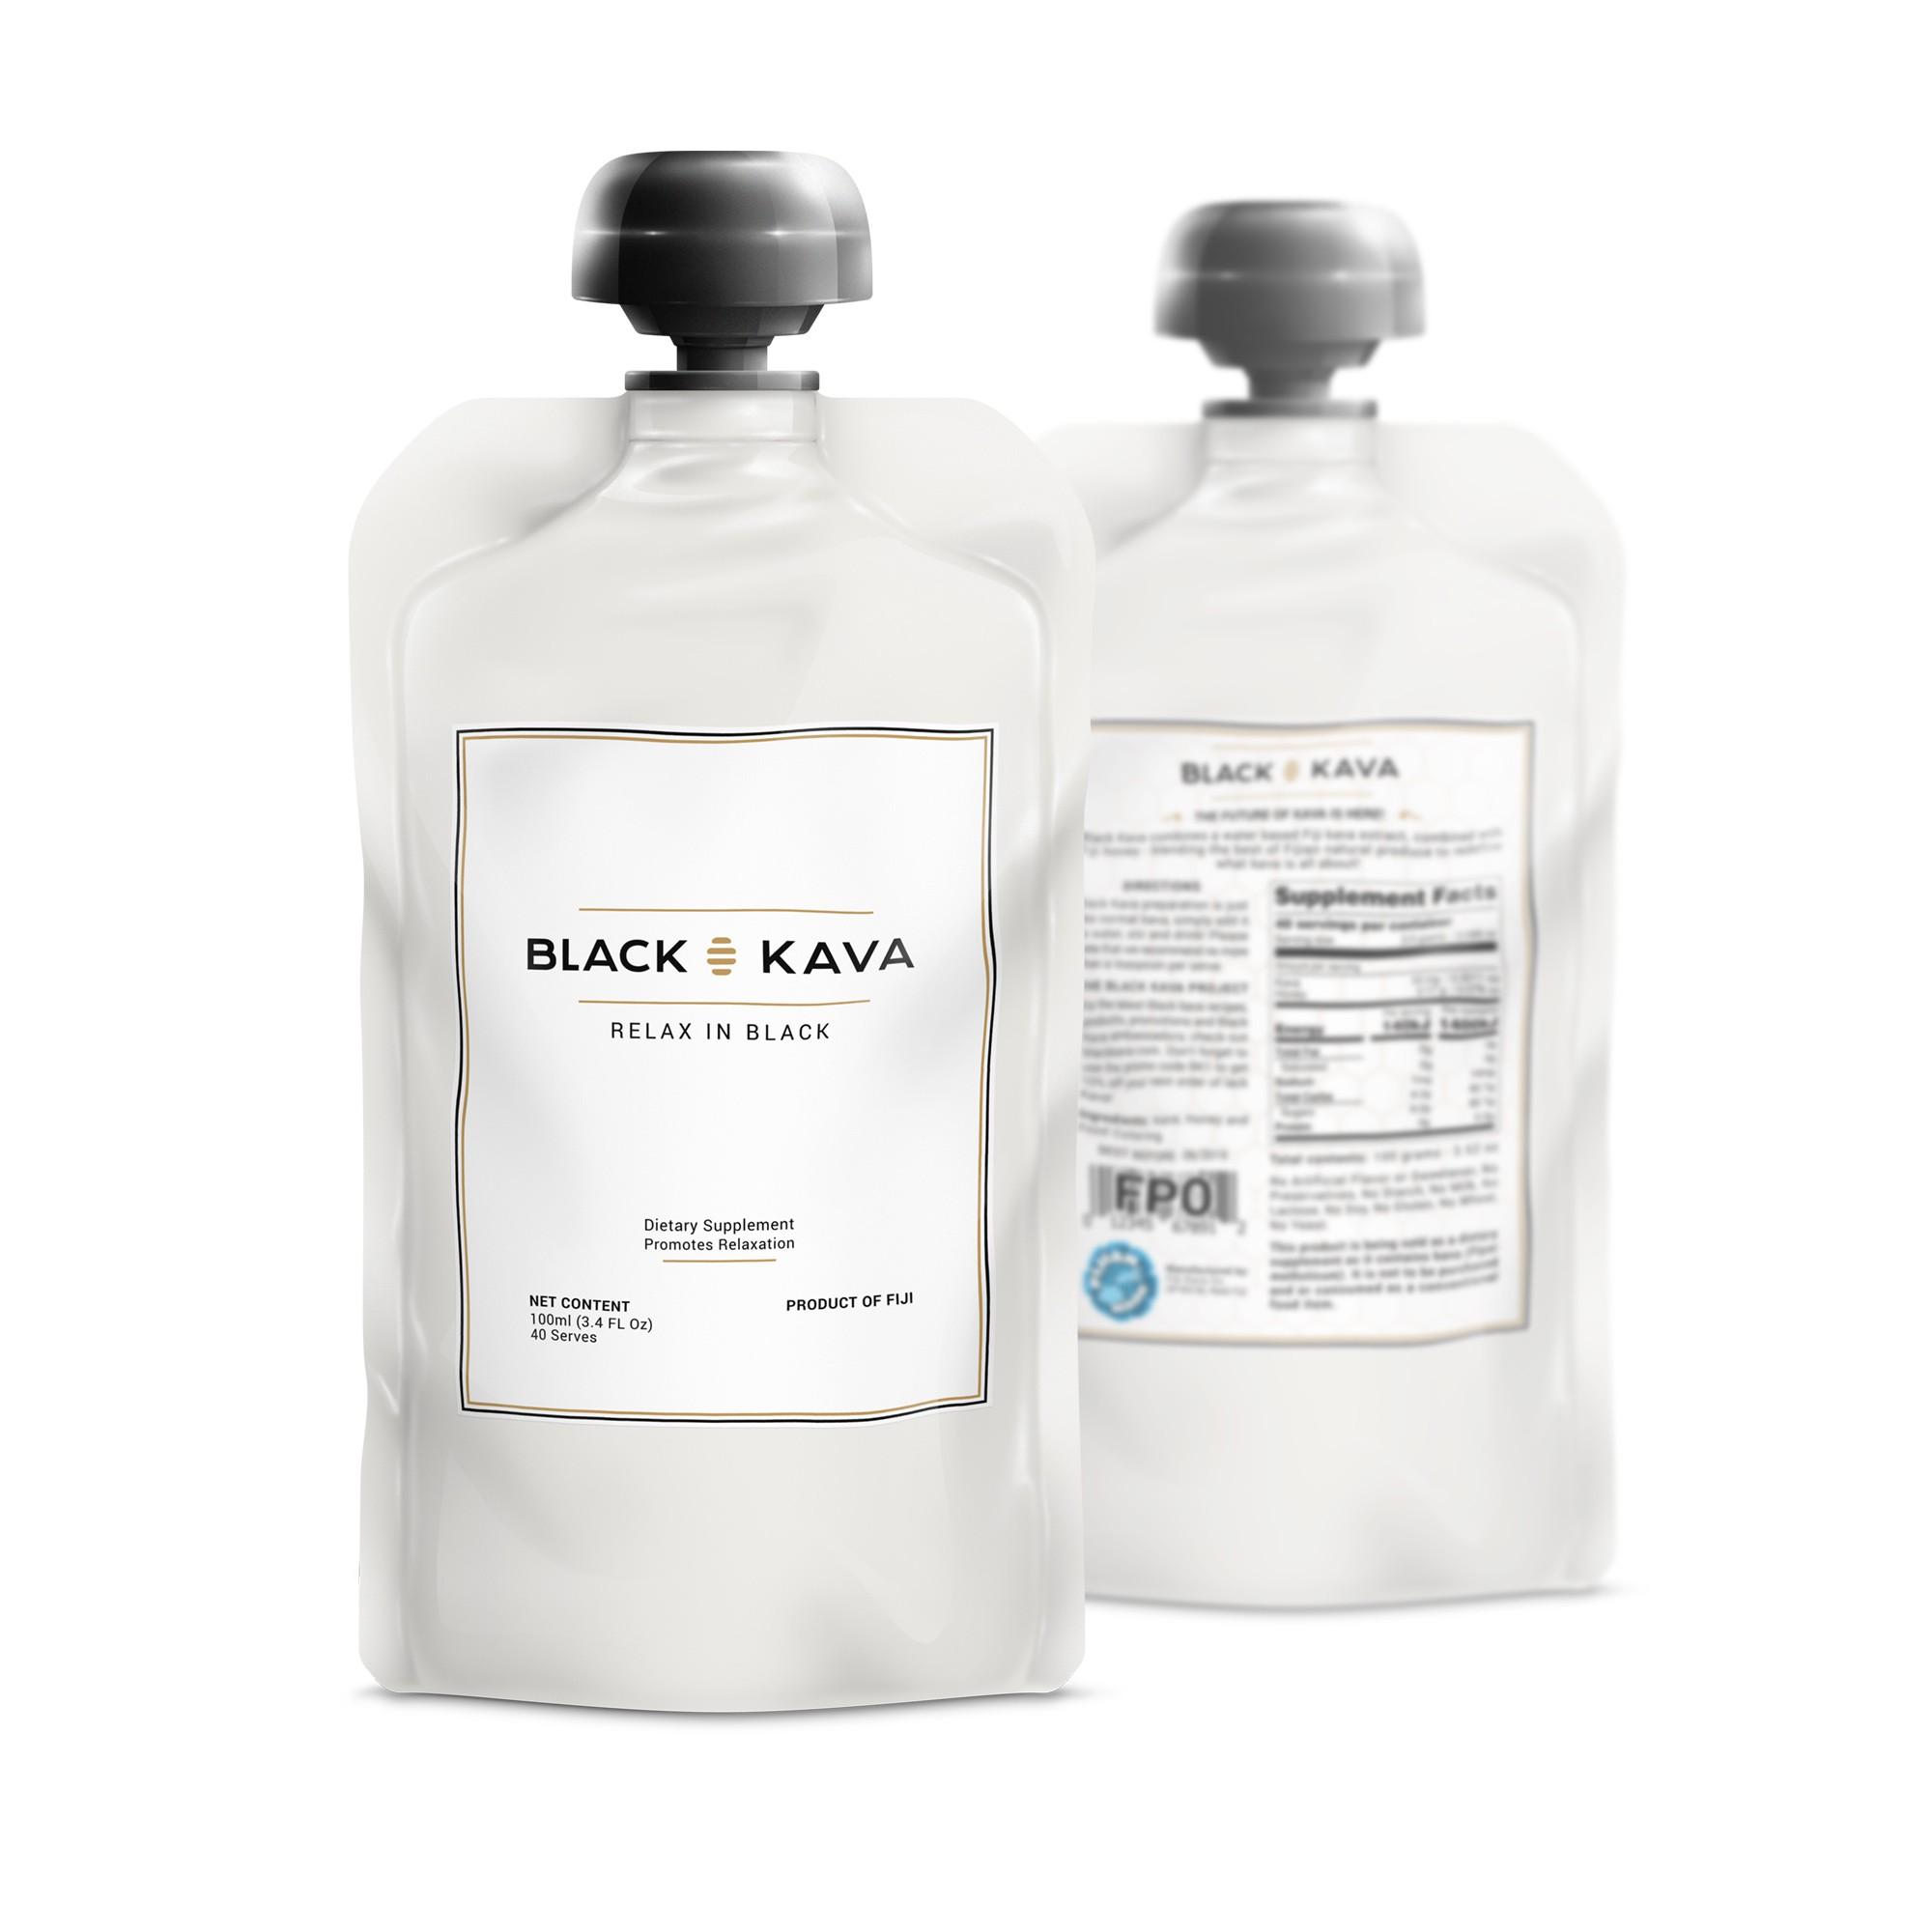 FDA compliant packaging/lables for Black Honey